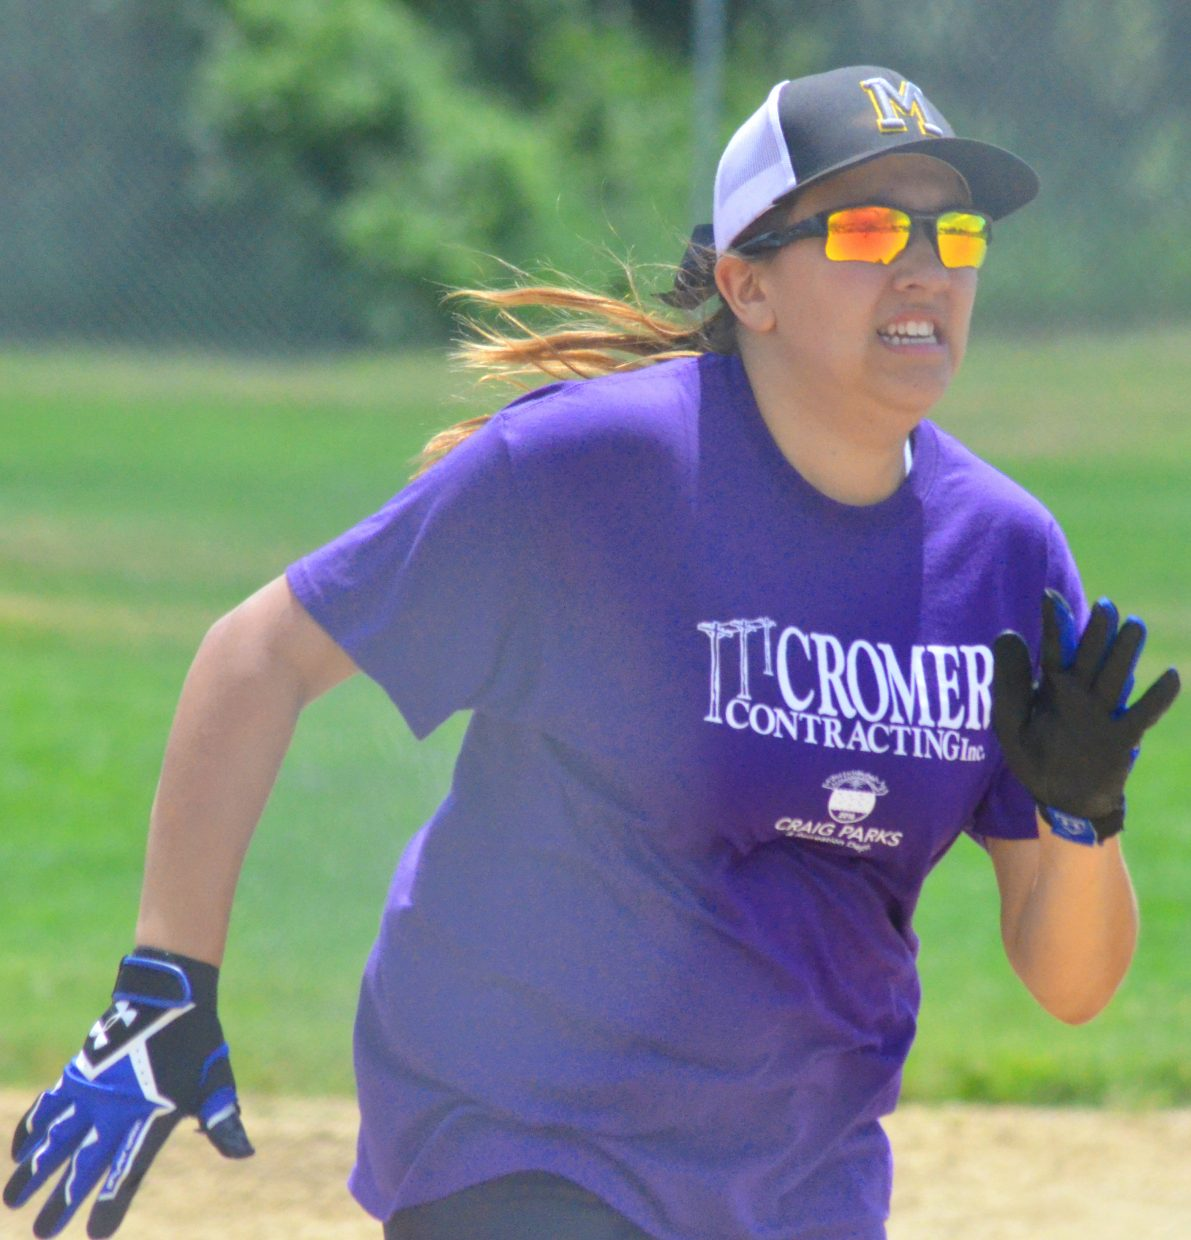 Sheyenne Cromer, of Cromer Contracting, speeds to home plate during the championship game of the girls 13- to 18-year-old slow pitch softball league for Craig Parks & Recreation.